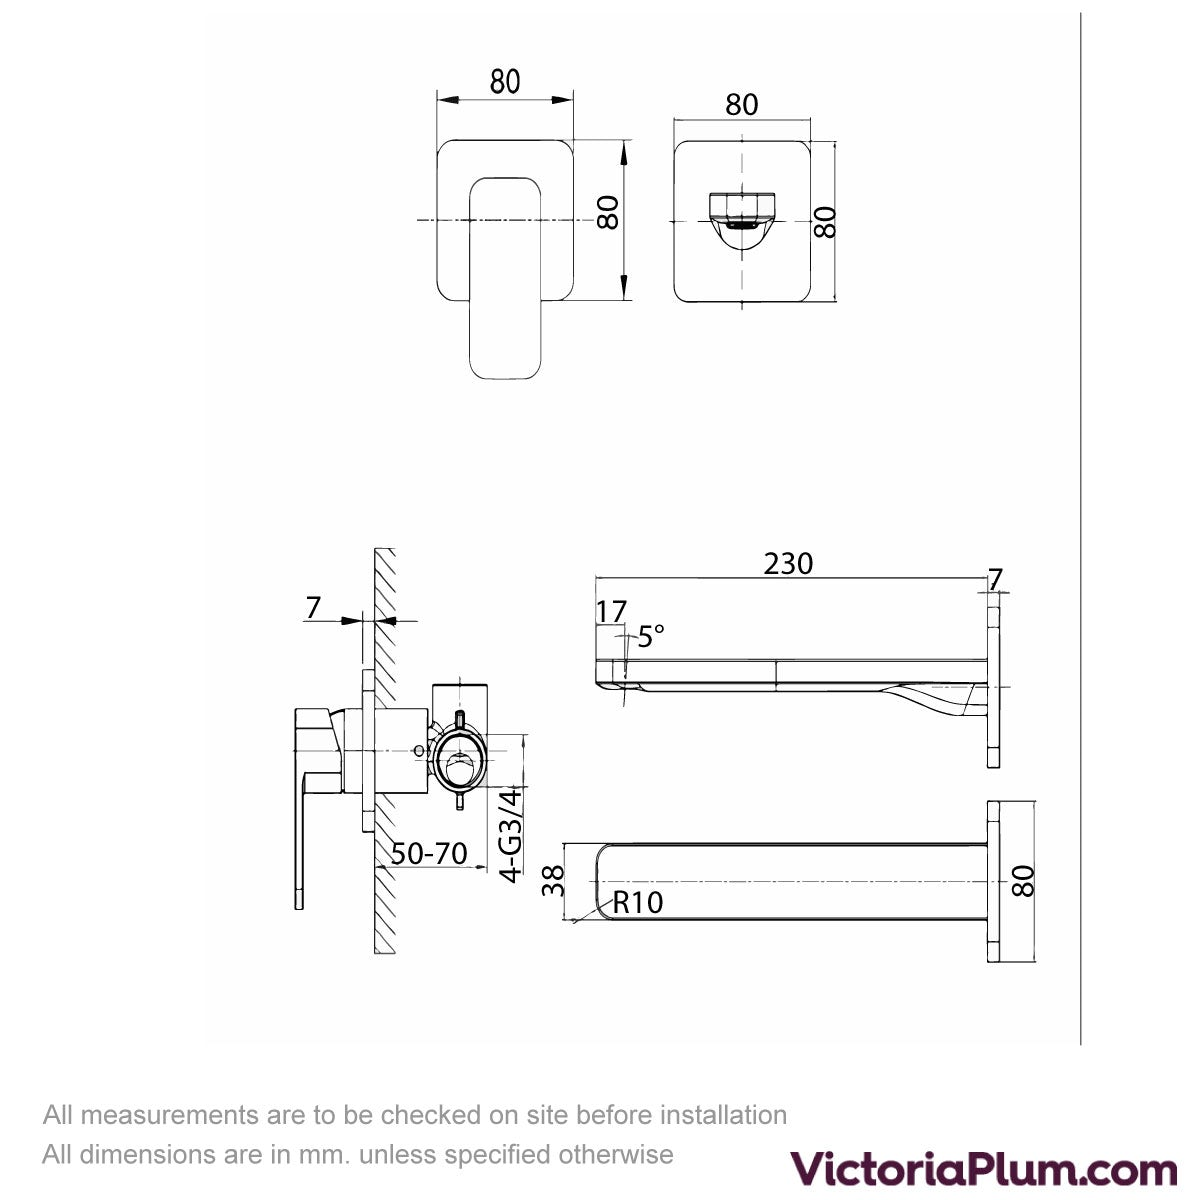 Dimensions for Mode Spencer square wall mounted rose gold bath mixer tap